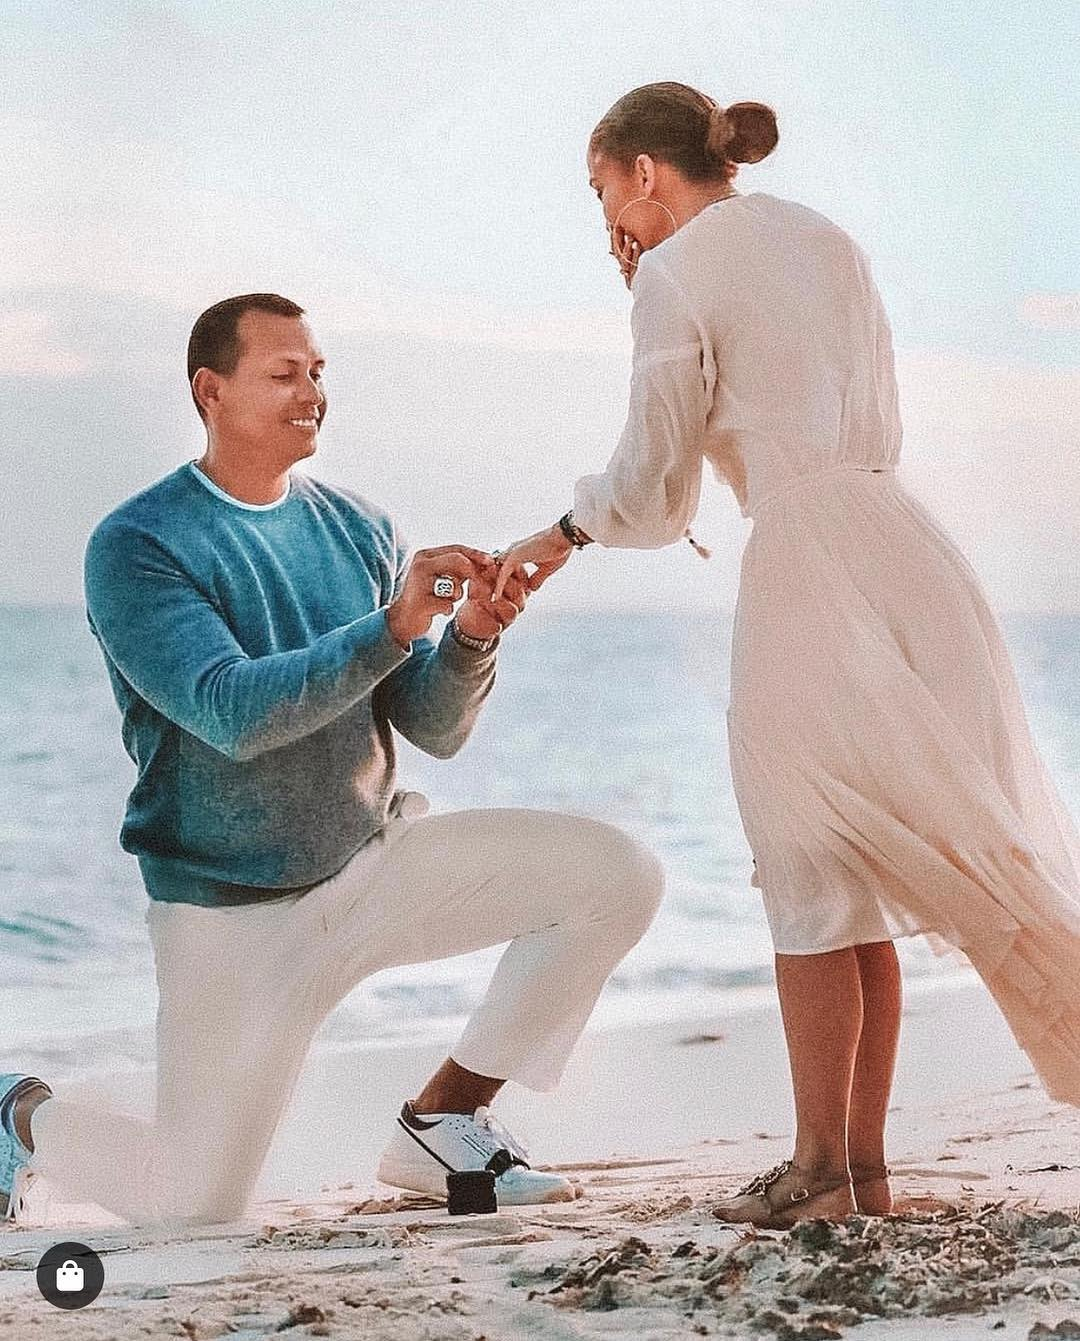 Congratulations to JLO and AROD